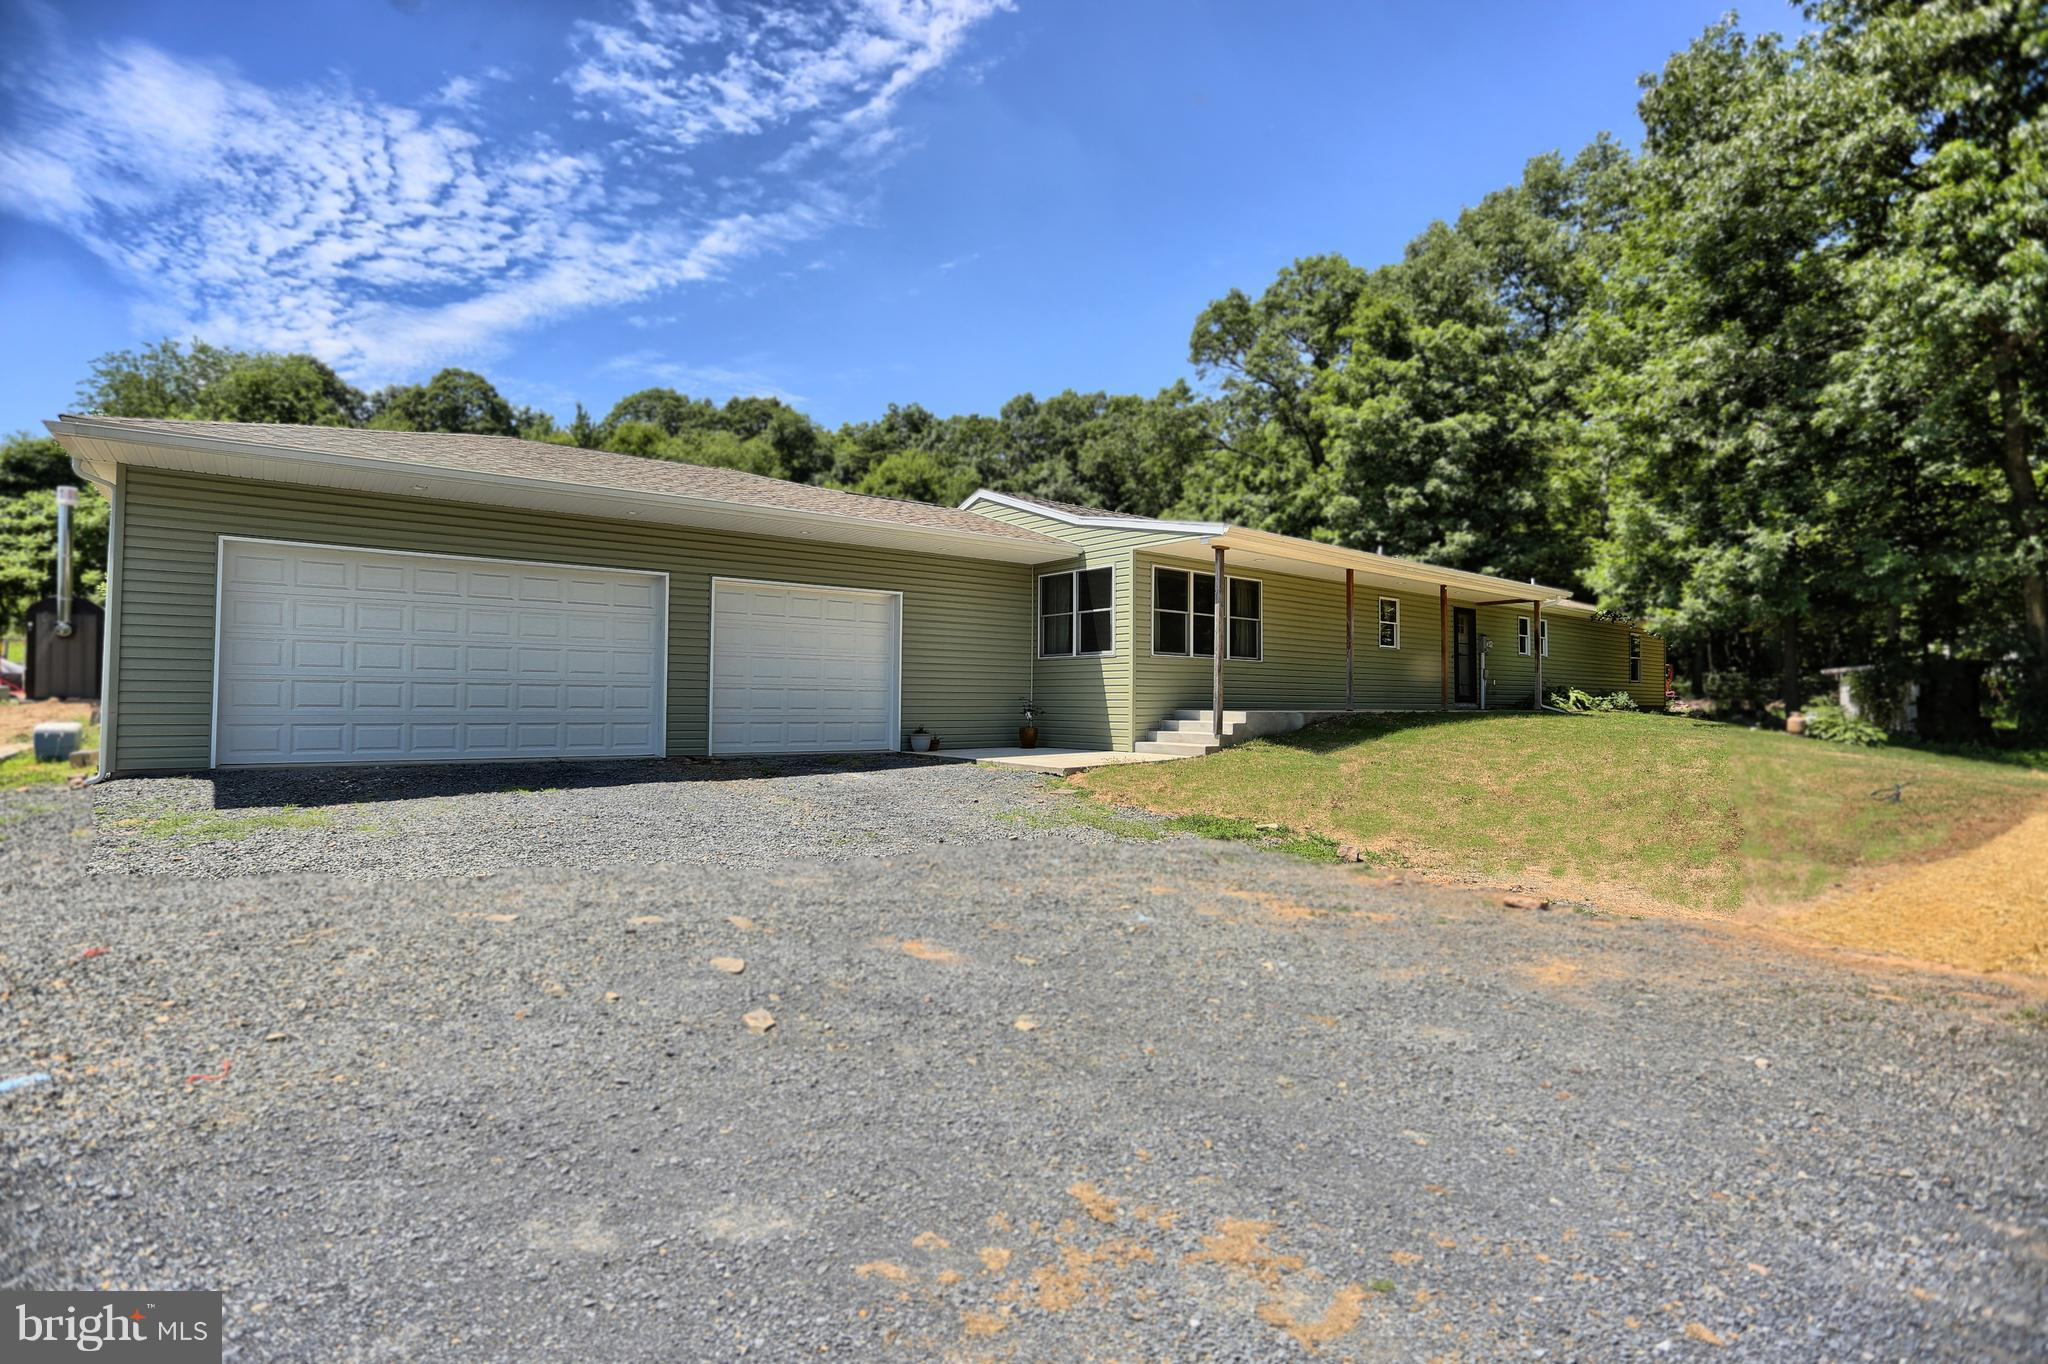 782 HUCKLEBERRY ROAD, NEW BLOOMFIELD, PA 17068